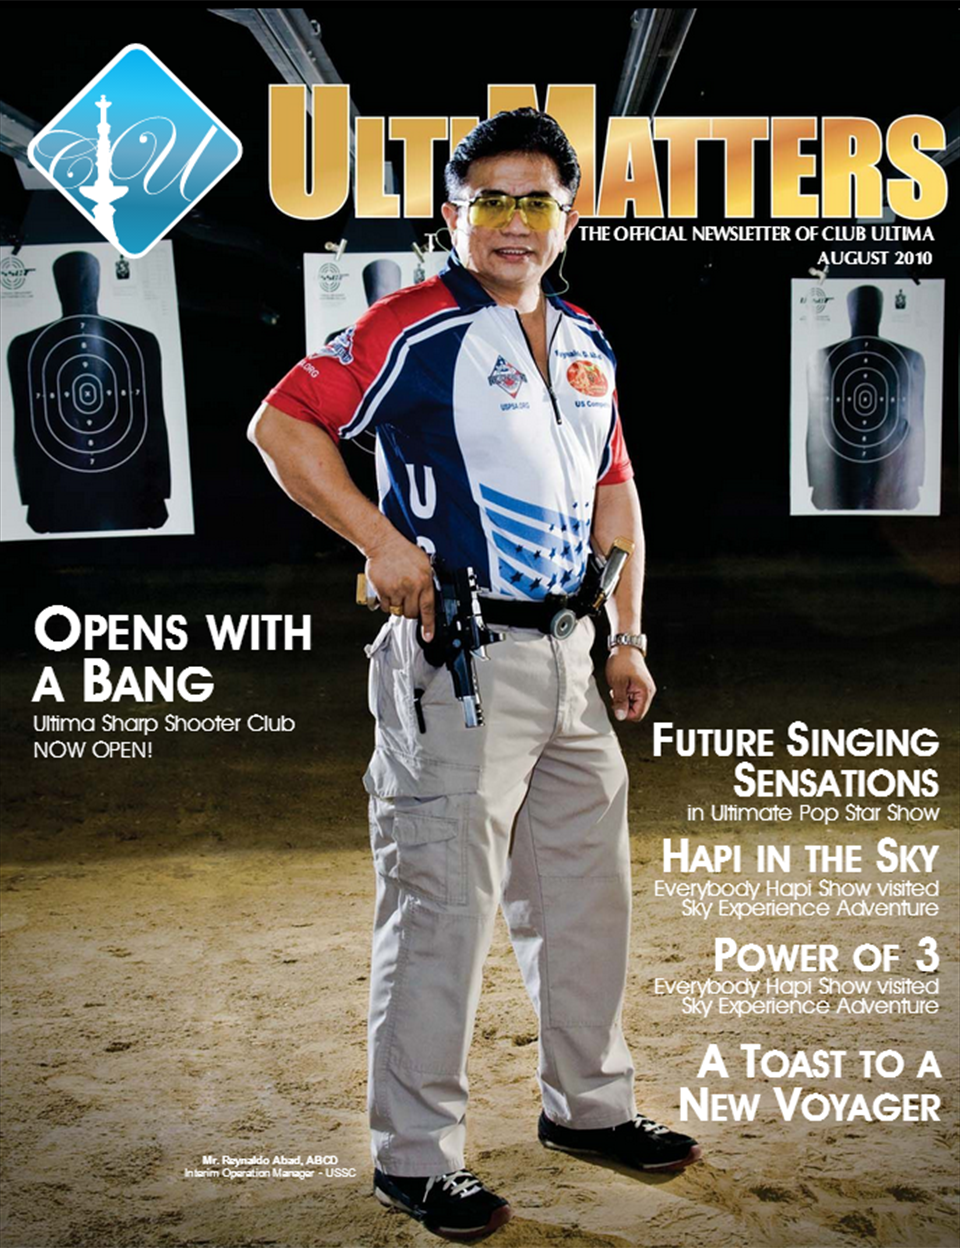 Ultimatters Issue No. 13